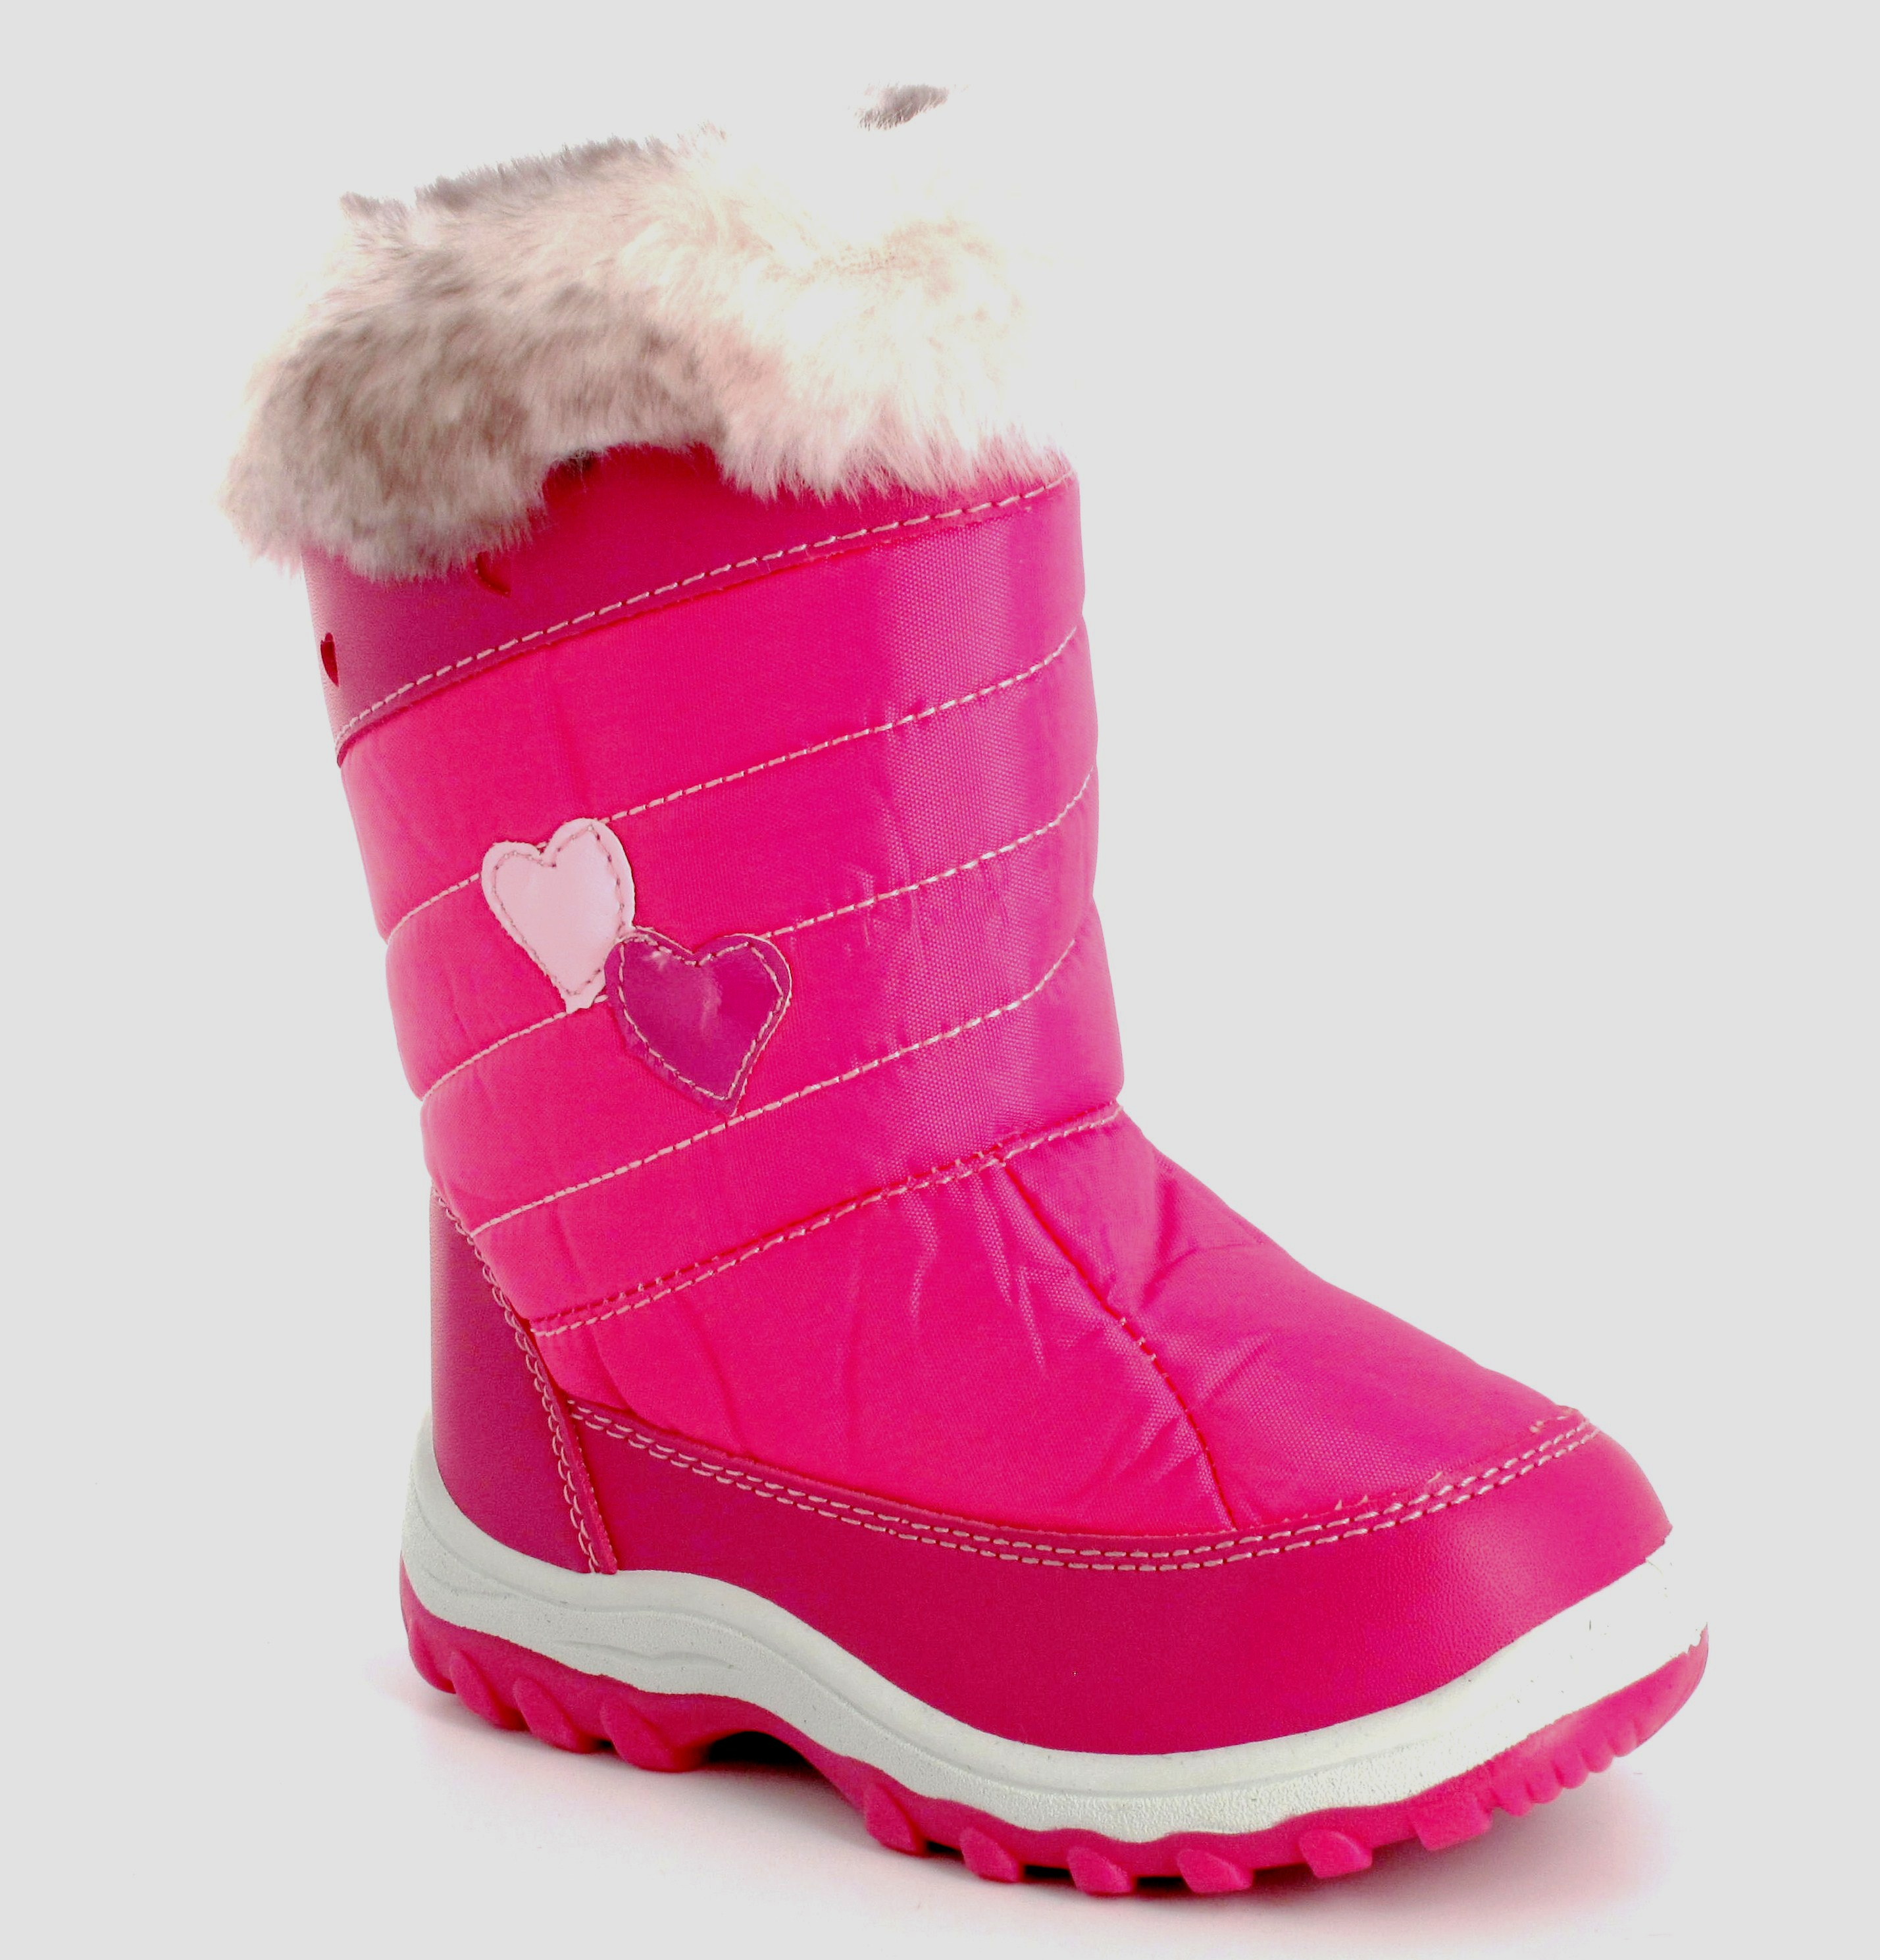 kid winter pink fur snow boots uk size 10 11 12 only